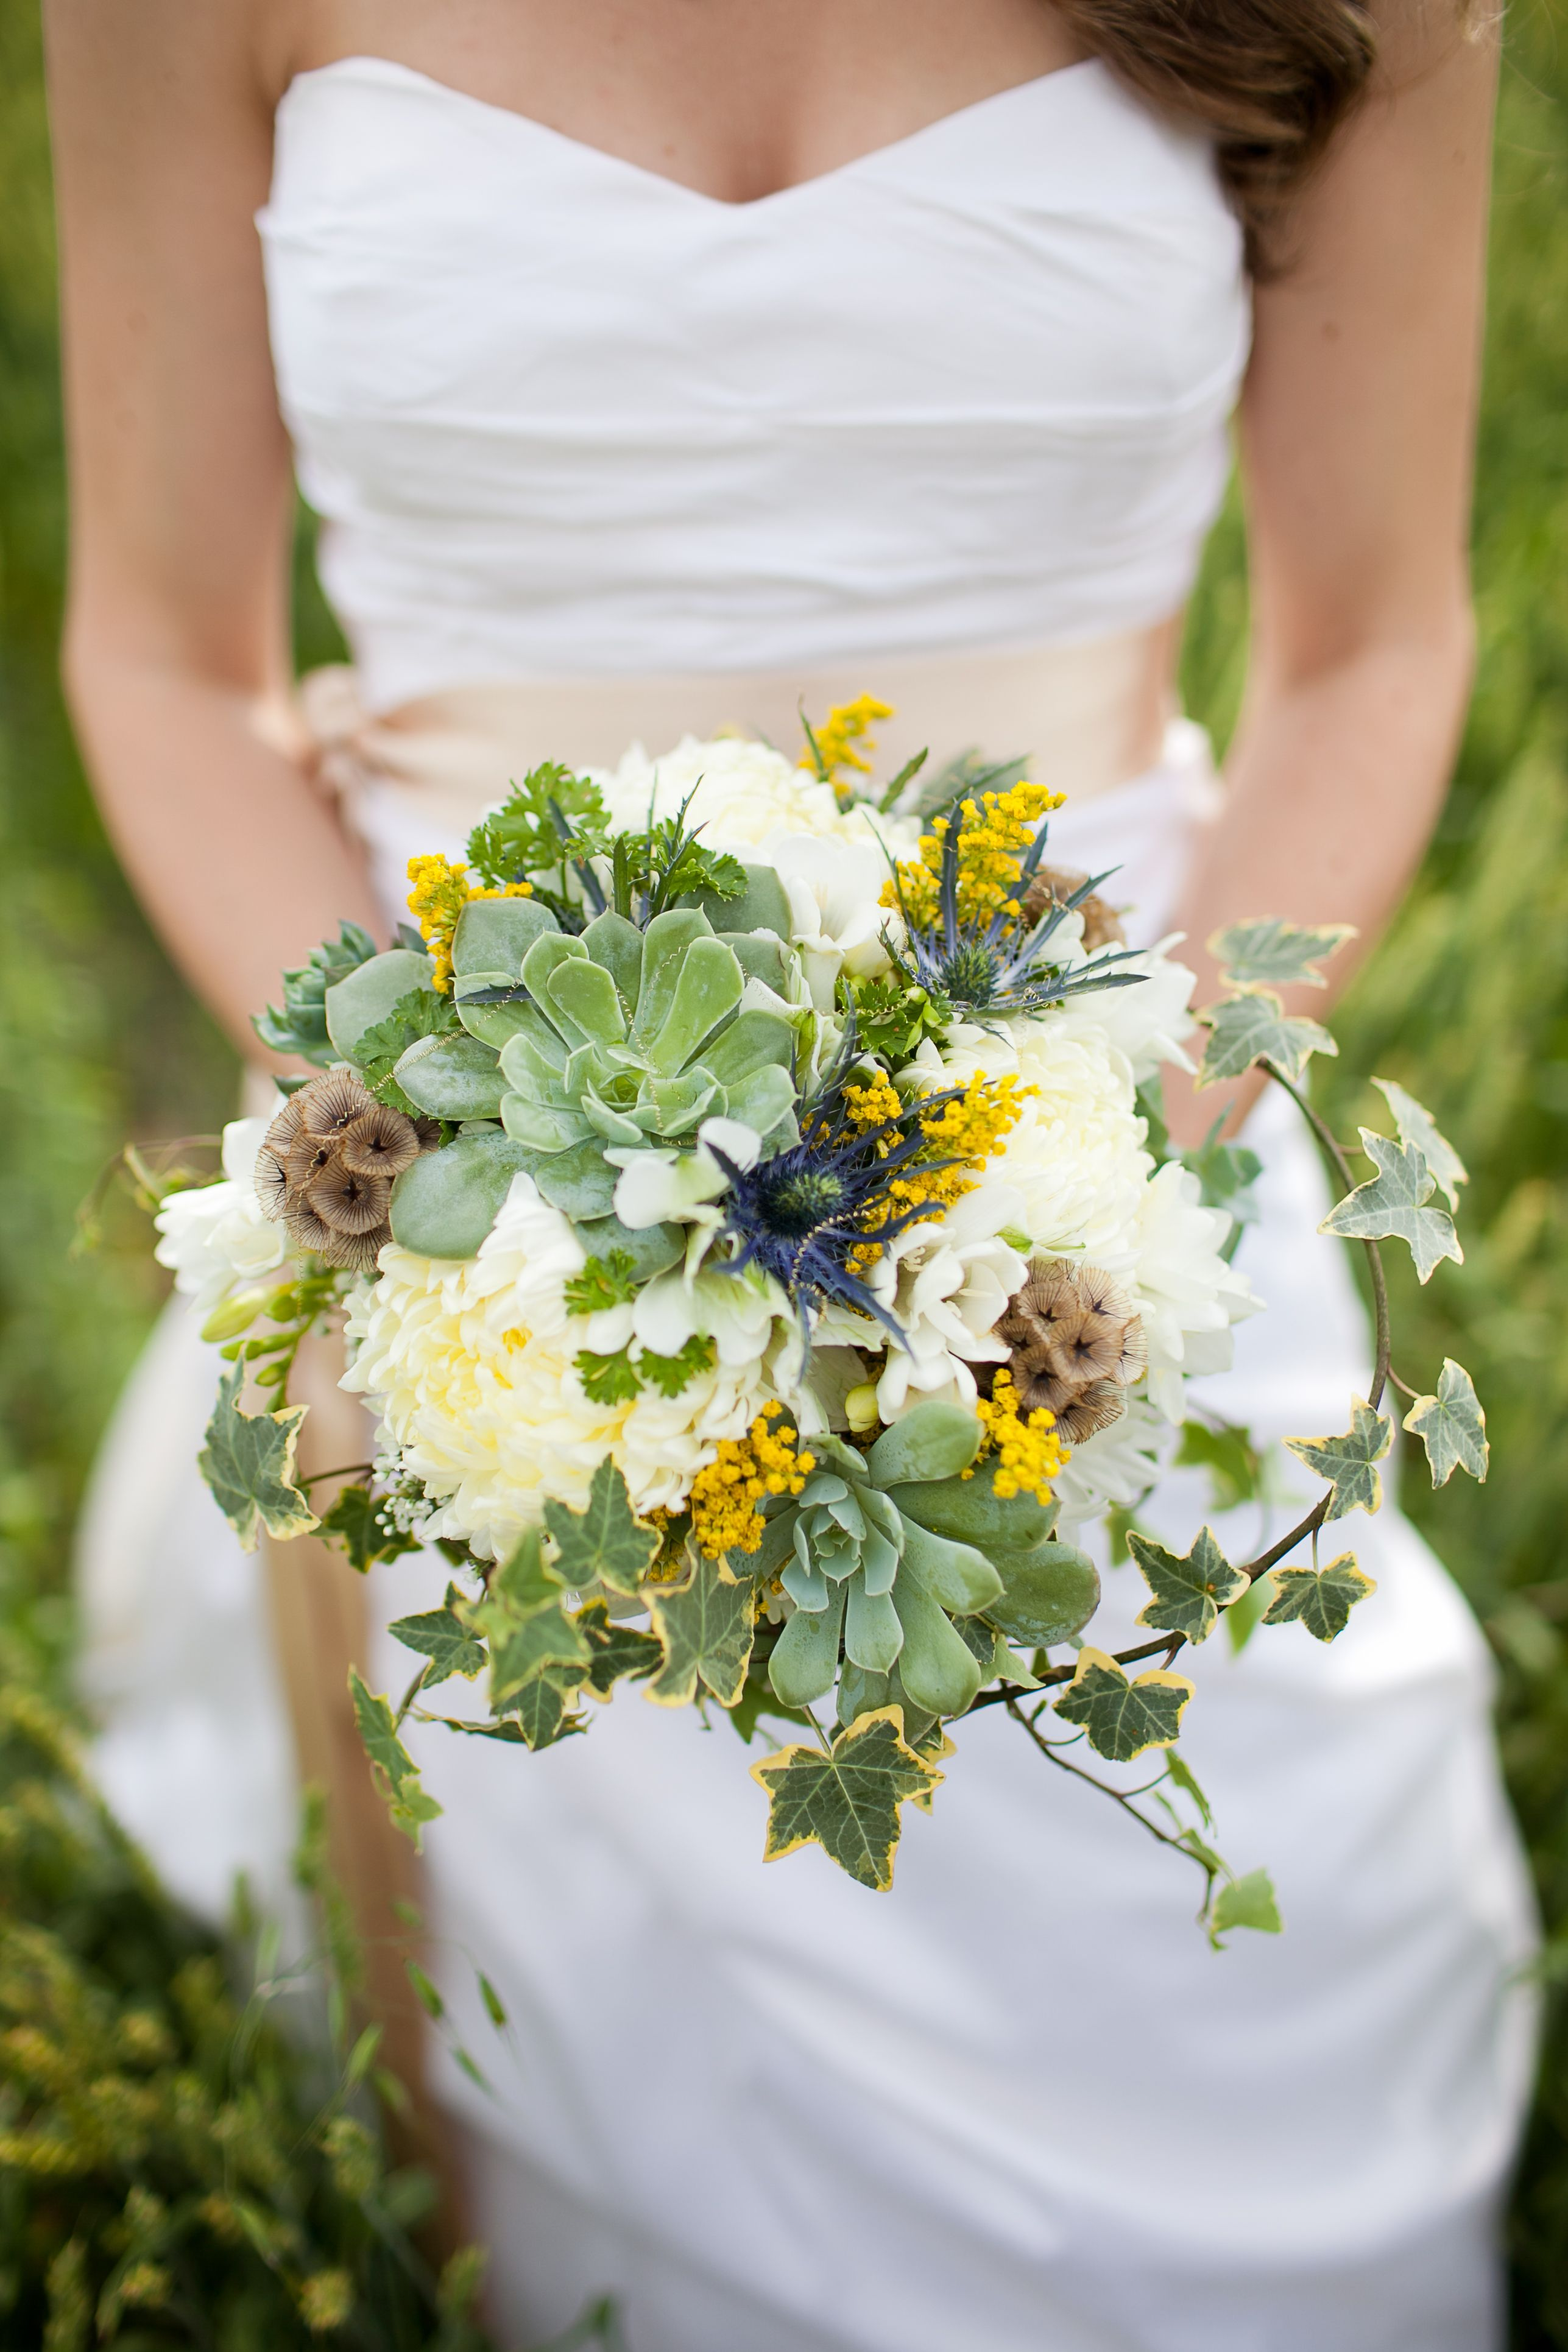 Wedding Flowers Bridal Bouquet Rustic Hens And S In Bouquets